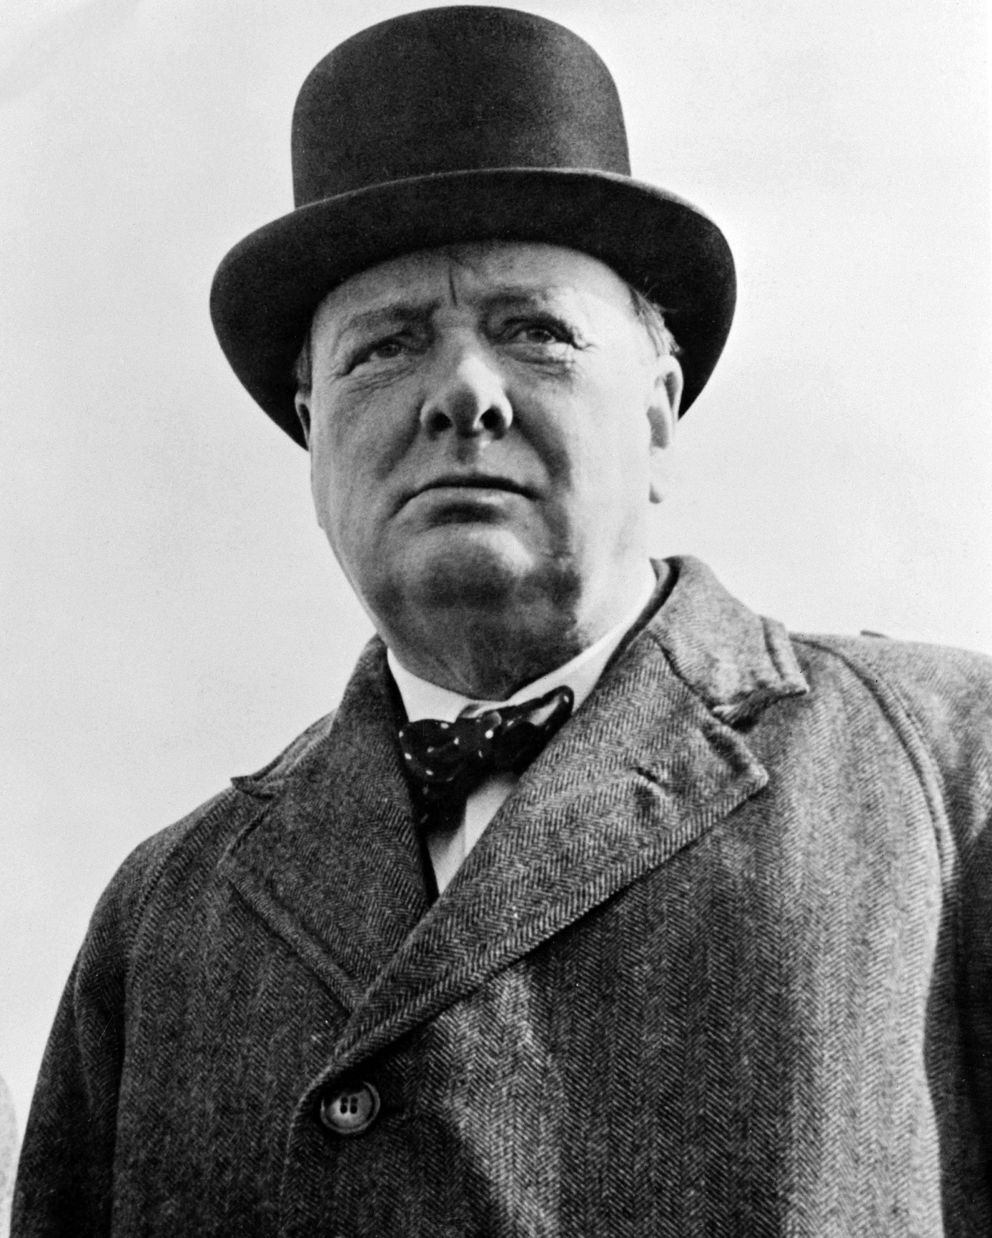 Sir Winston Churchill in 1942 (U.S. Library of Congress)